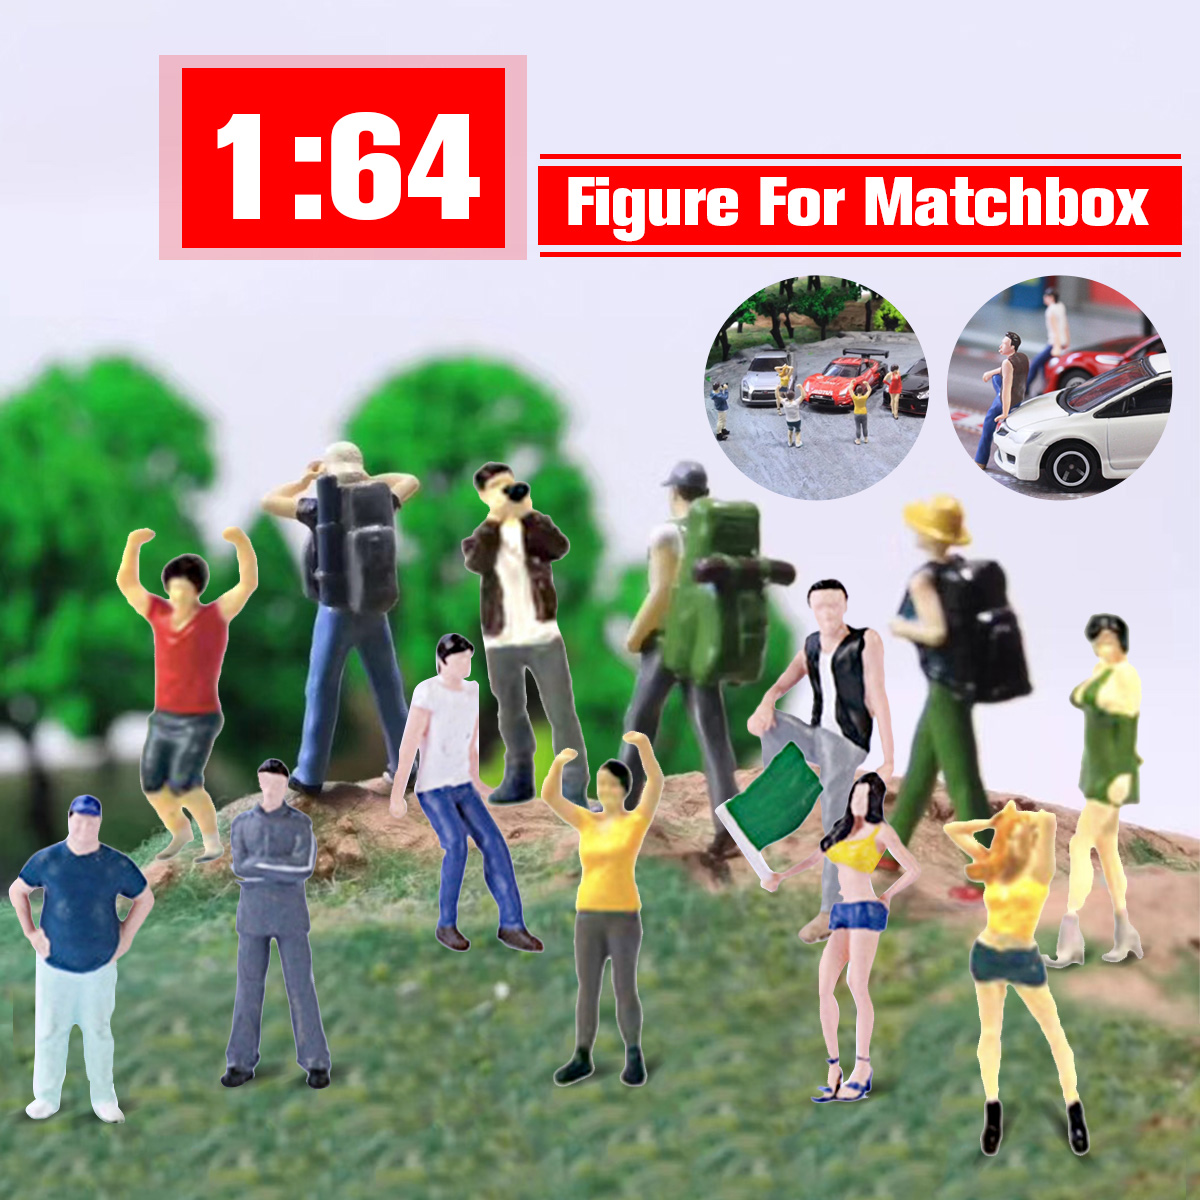 5Pcs/set Race Medal 1:64 The Playing Field Scale Figure Backpacker People Scenario Model Set For Matchbox Children Toy Group